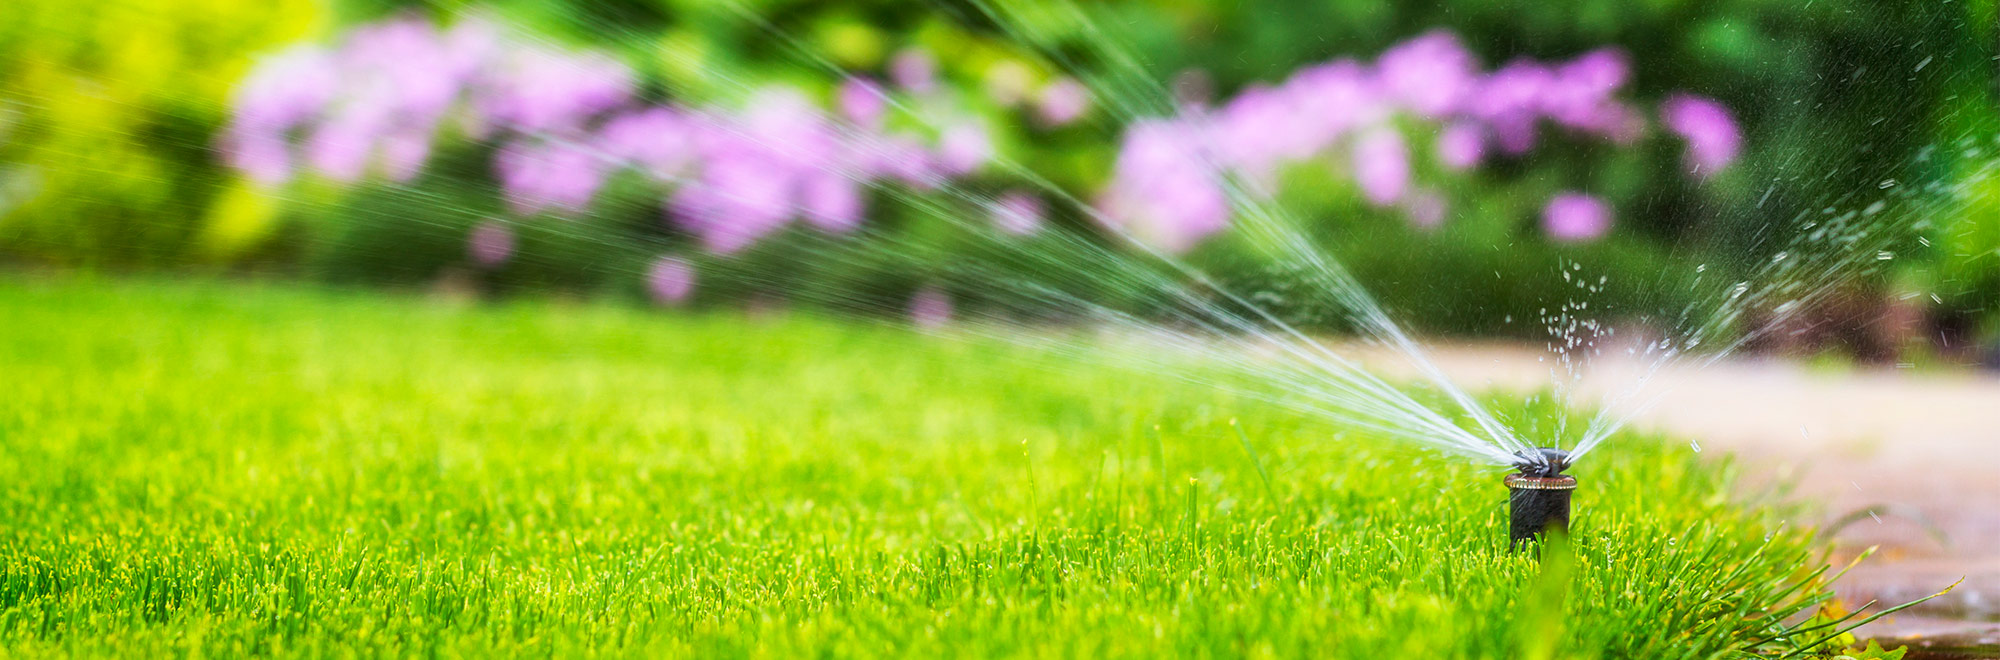 sprinkler system in lawn